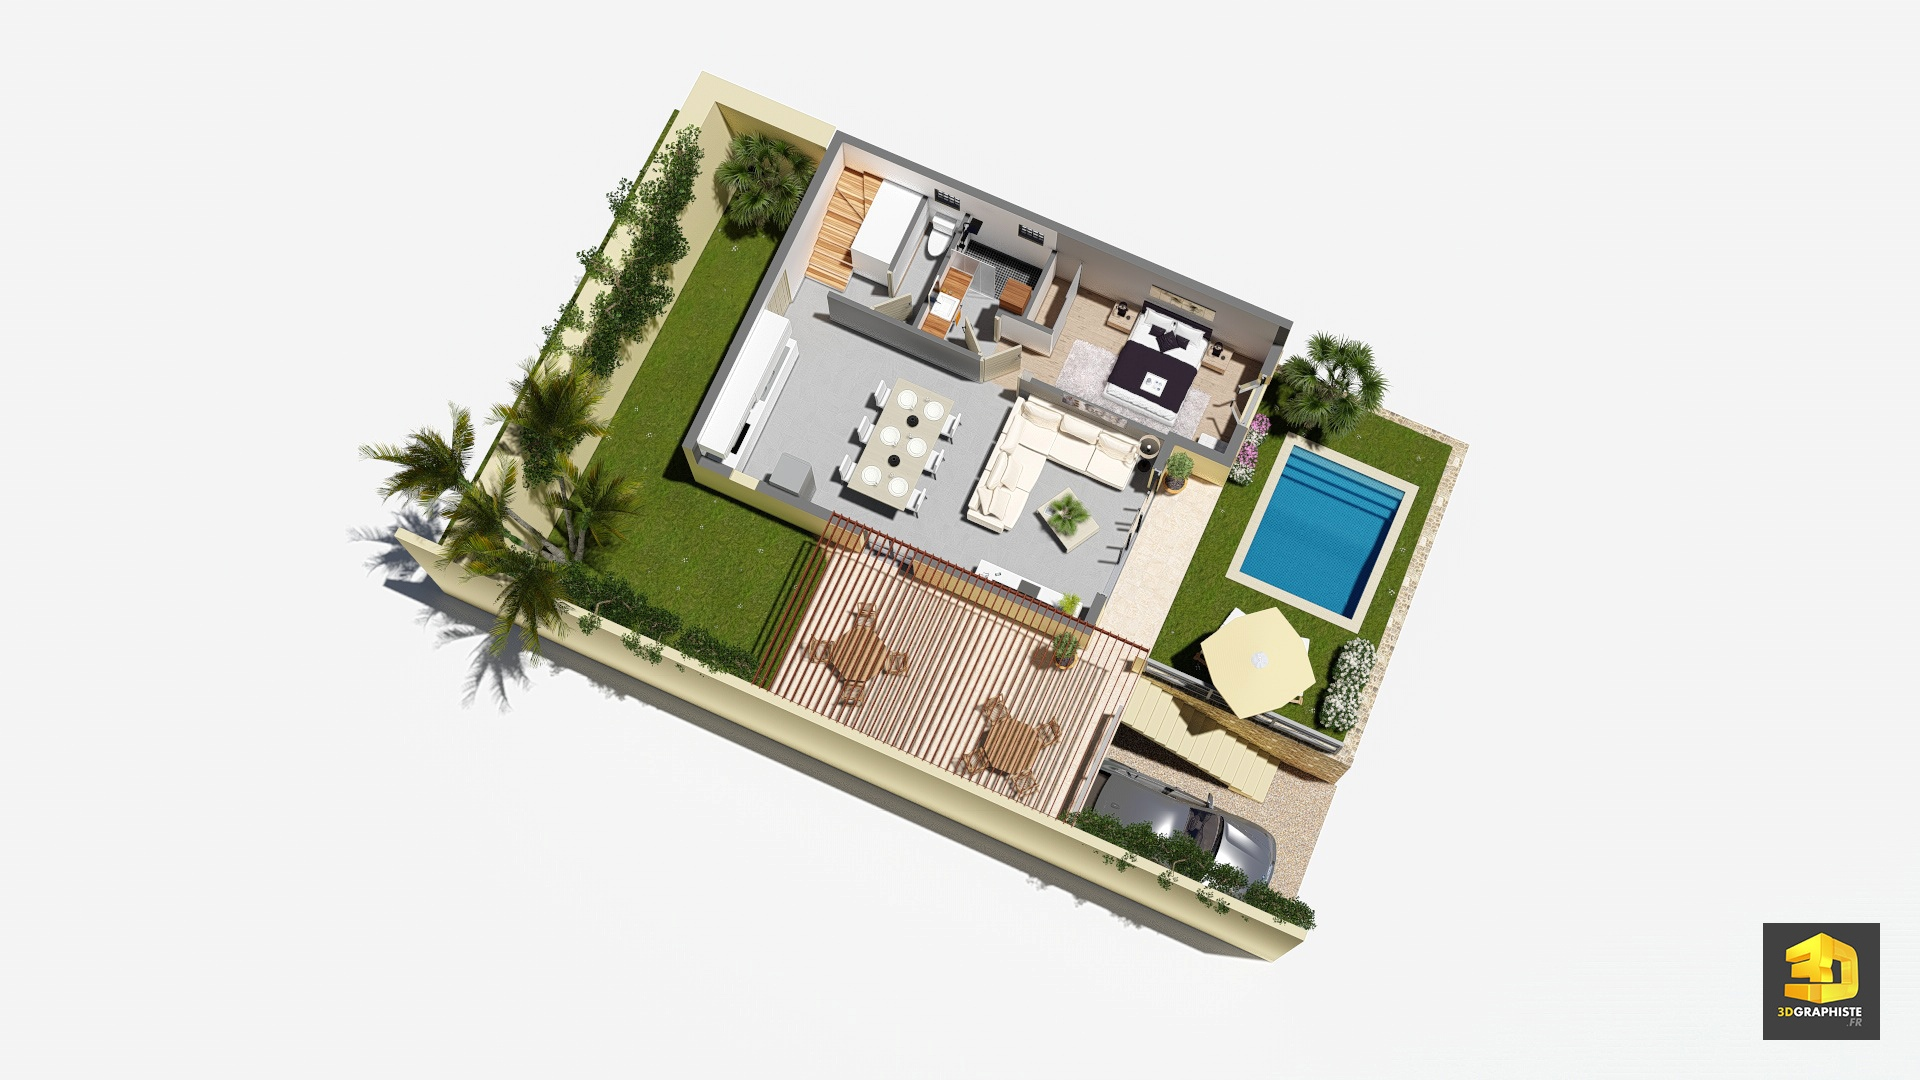 Perspectives 3d pour l 39 immobilier villas domenjod for Plans de villa